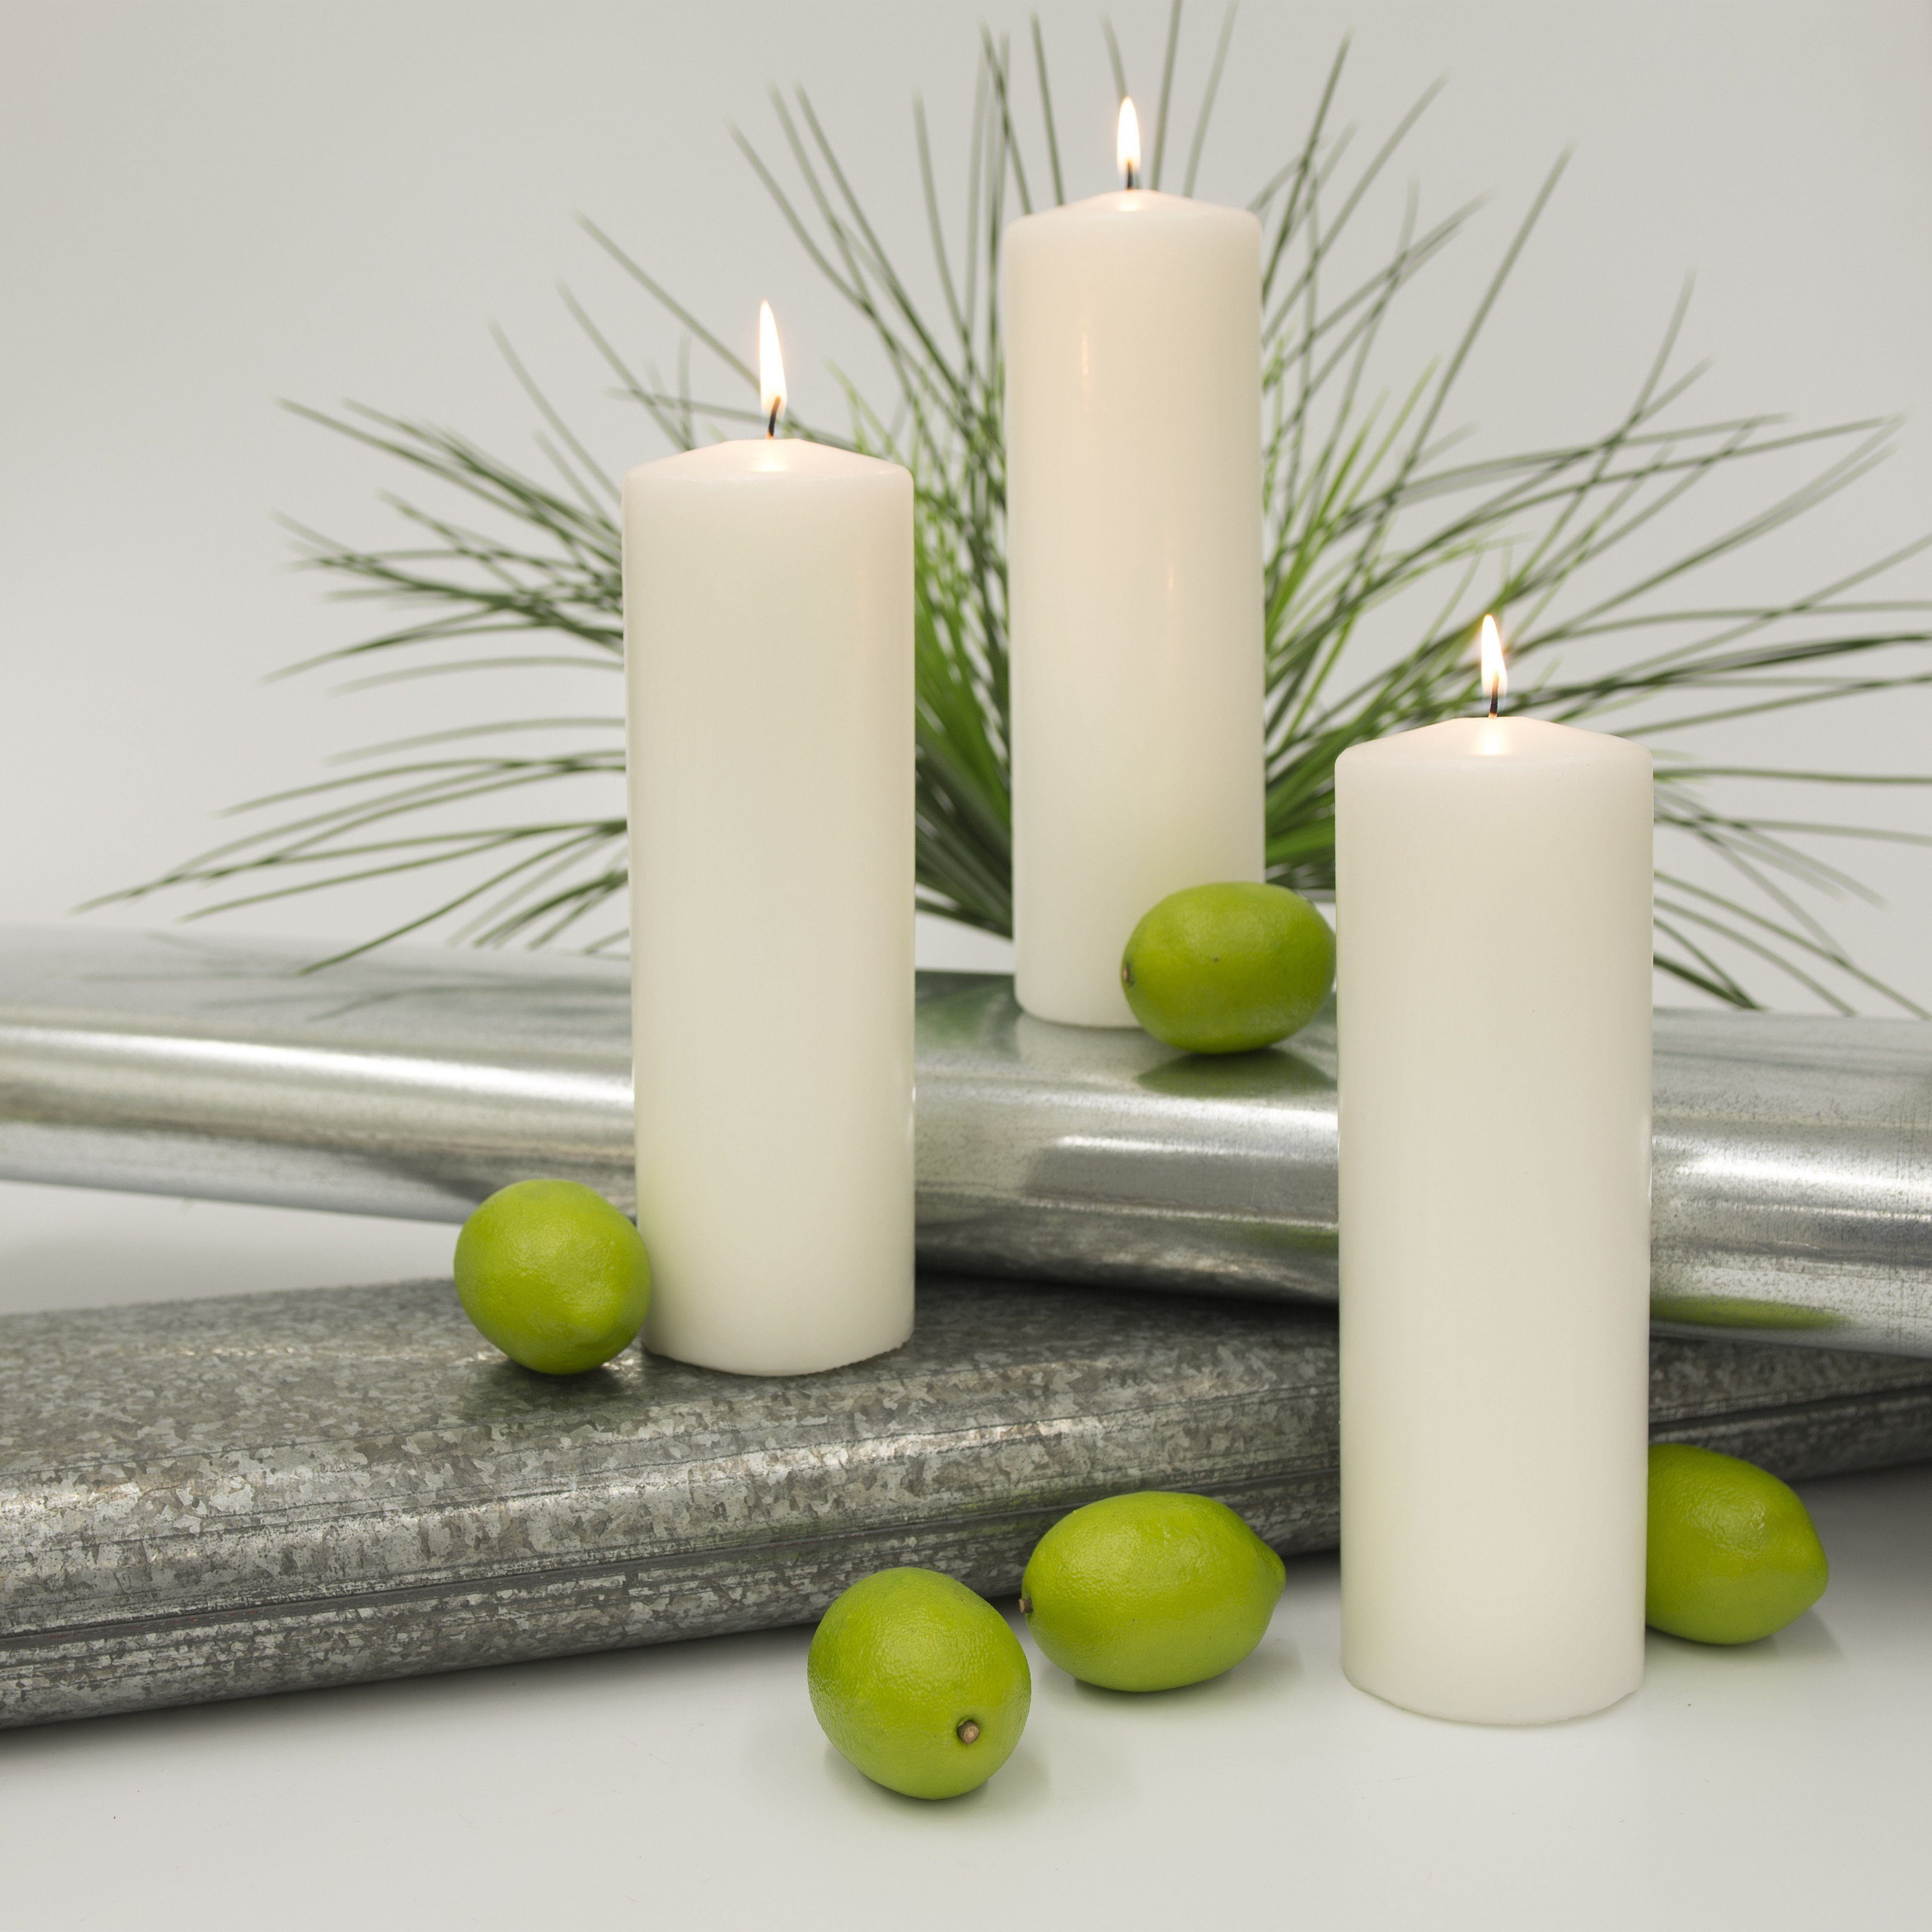 3x9 White Pillar Candle (case of 6) - WeddingCandles.com